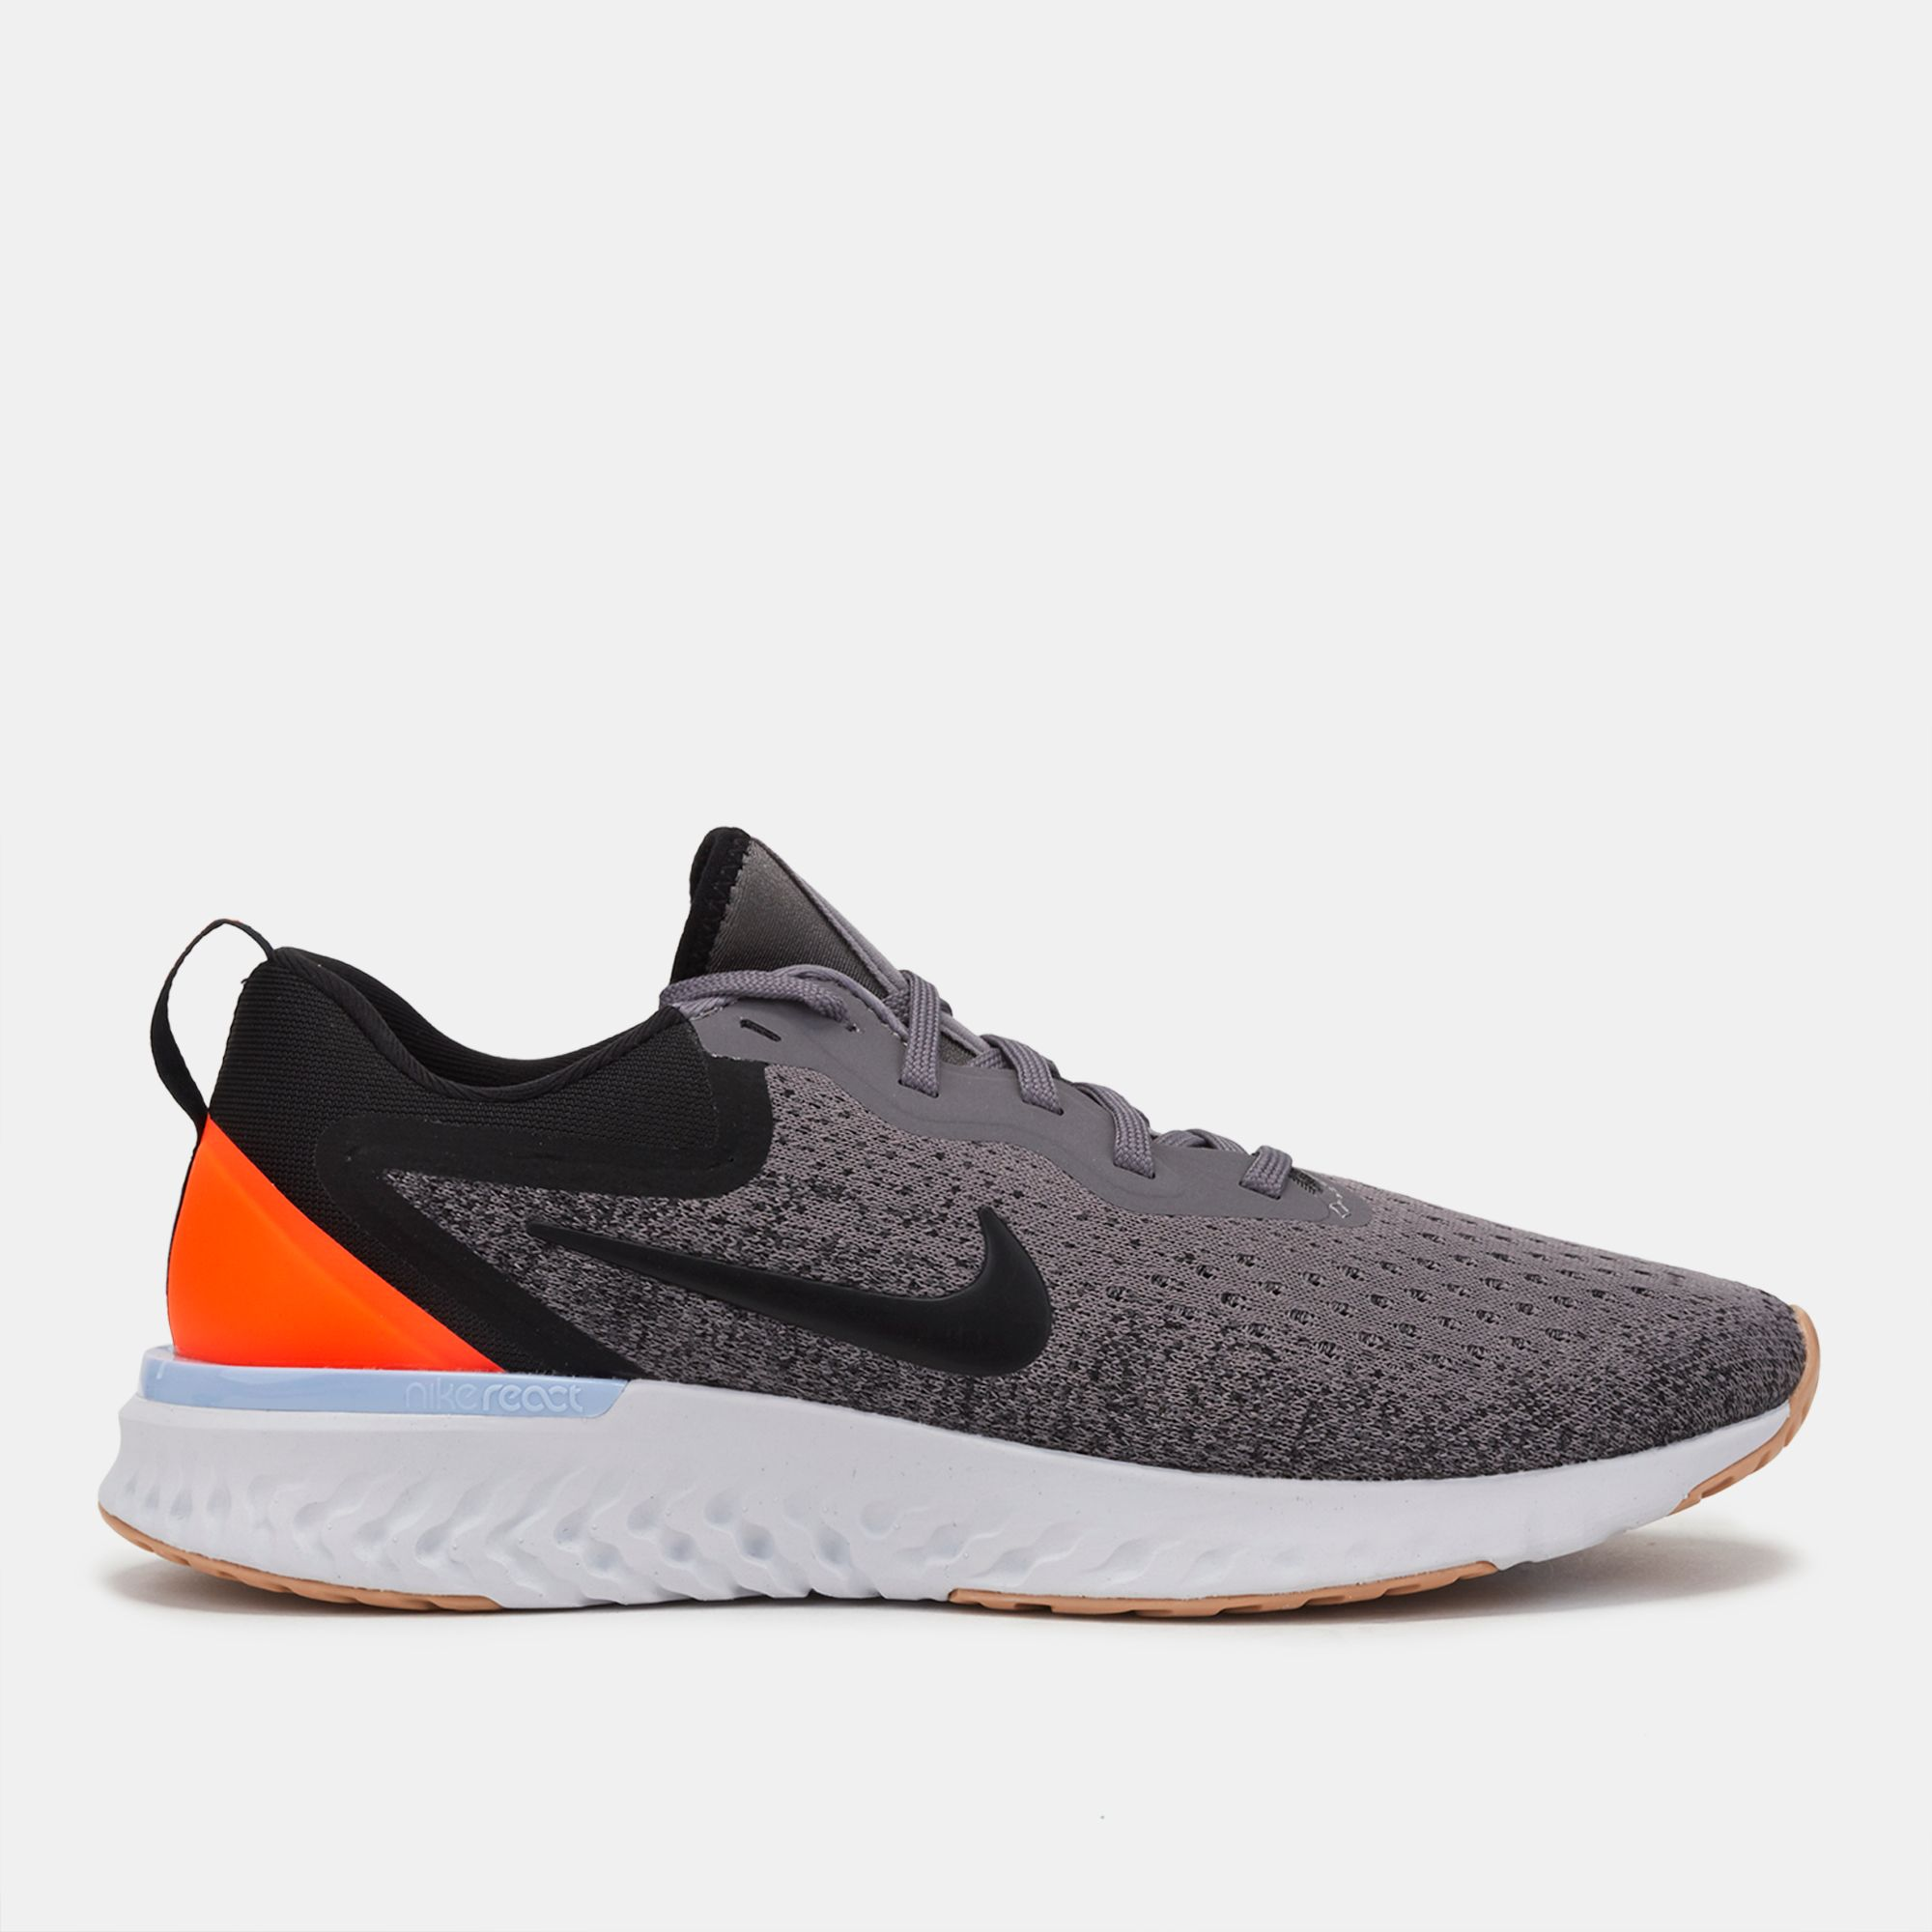 Shop Grey Nike Odyssey React Running Shoe for Womens by Nike SSS